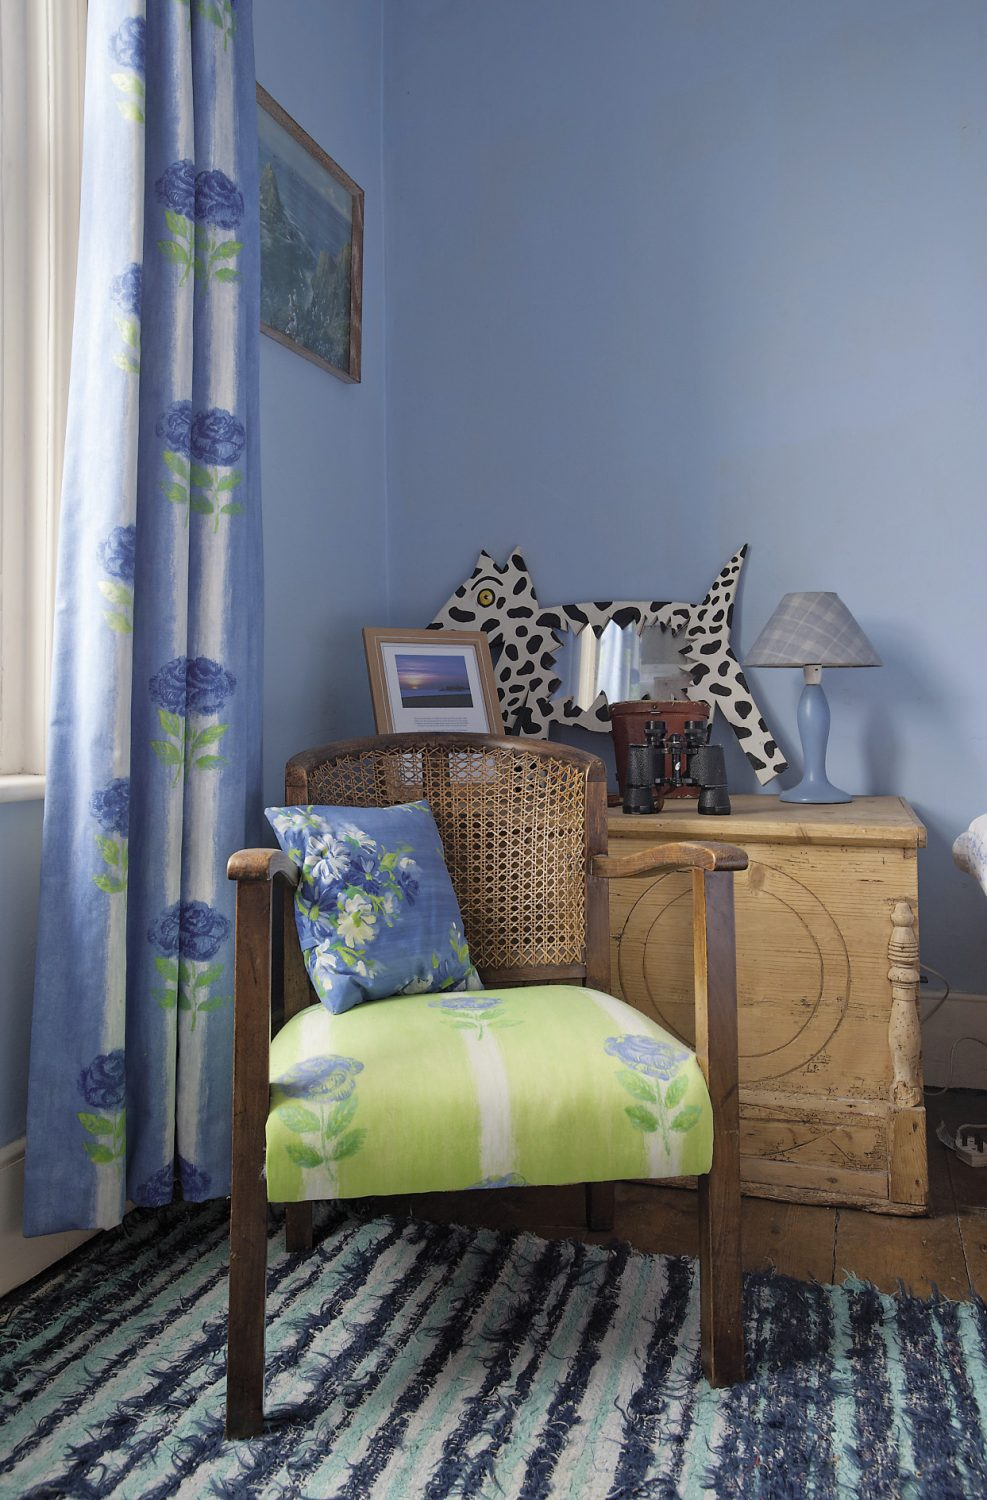 The guest bedroom is painted a strong forget-me-not blue. A low, cane-backed chair is upholstered with a cobalt blue and lime green Designers Guild fabric, the reverse colourway of the curtains, and there are more bright green accents around the room